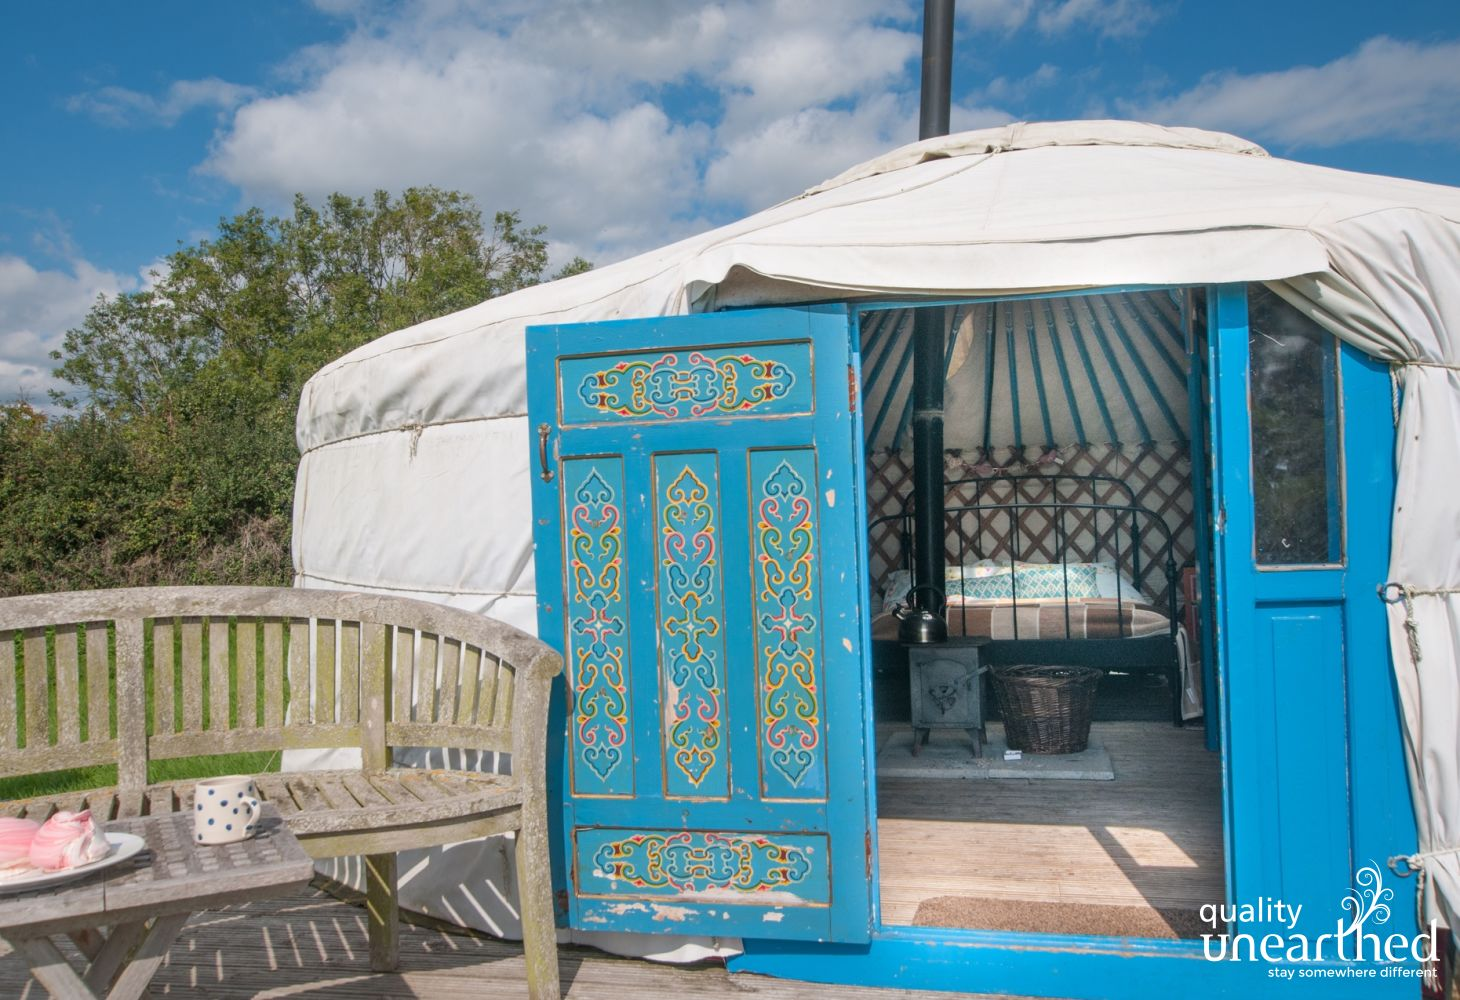 Moonslade Yurt in Taunton